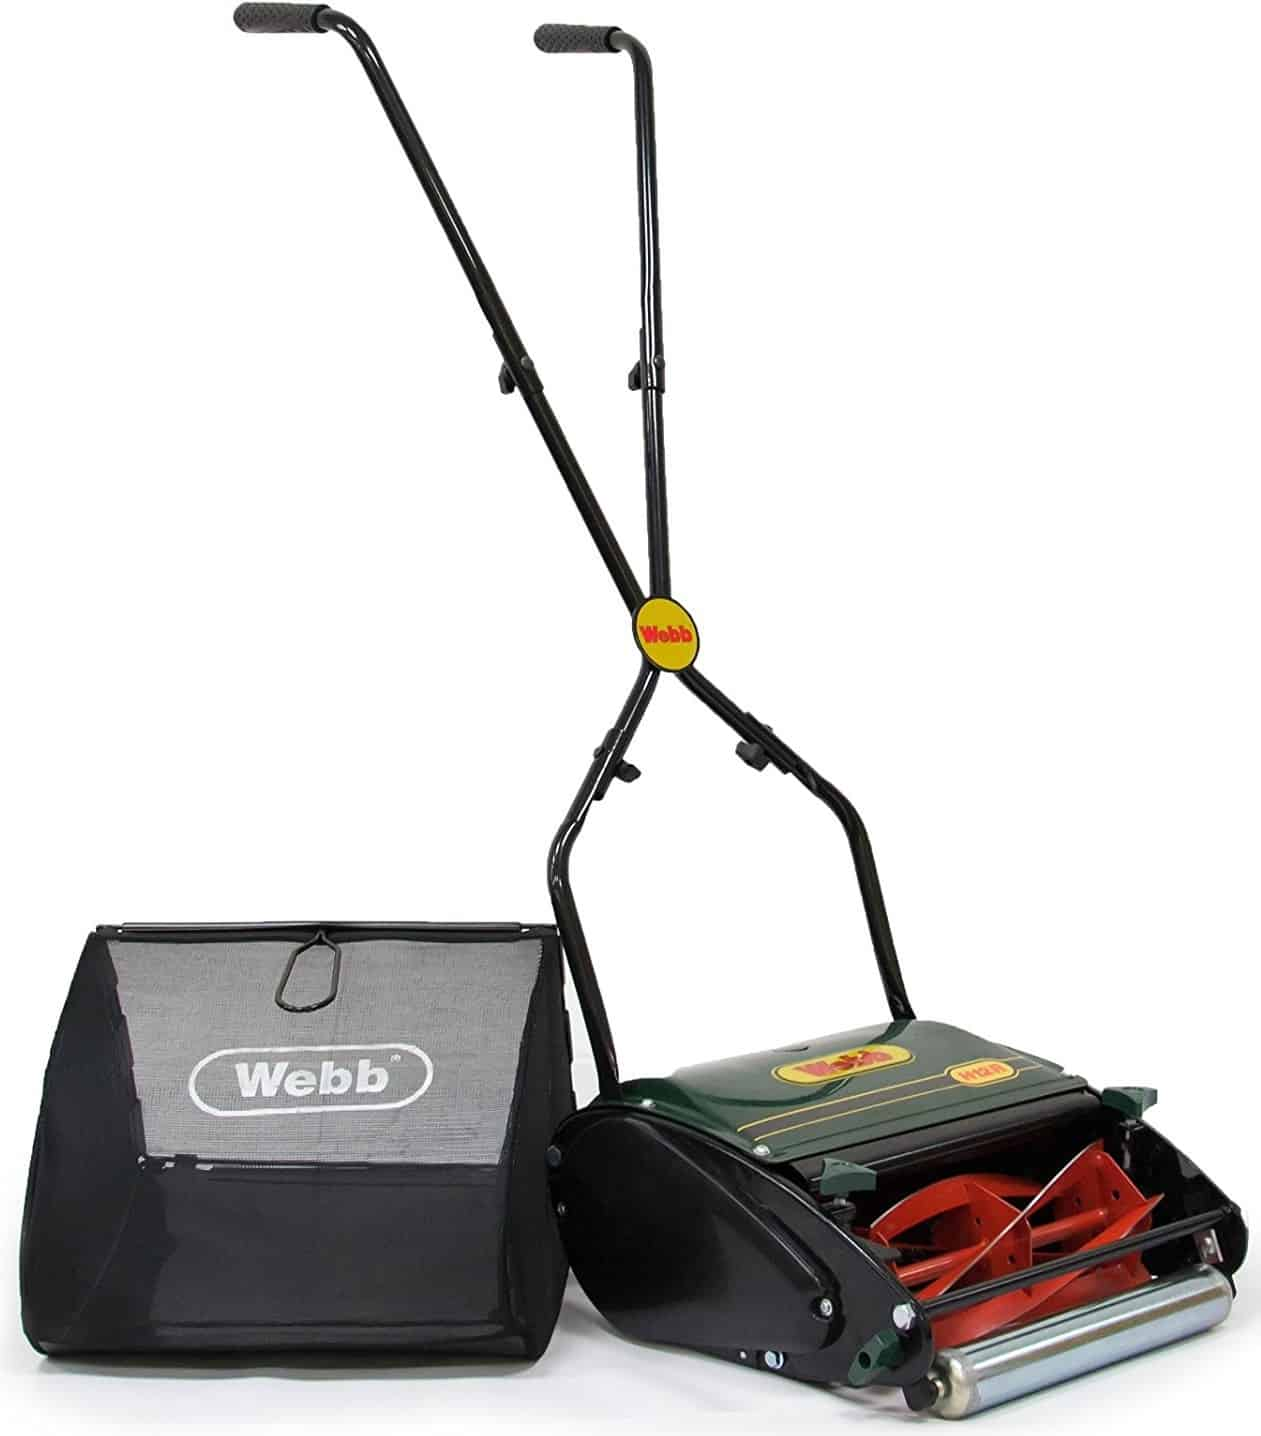 Best Hand Push Cylinder Mower - Webb